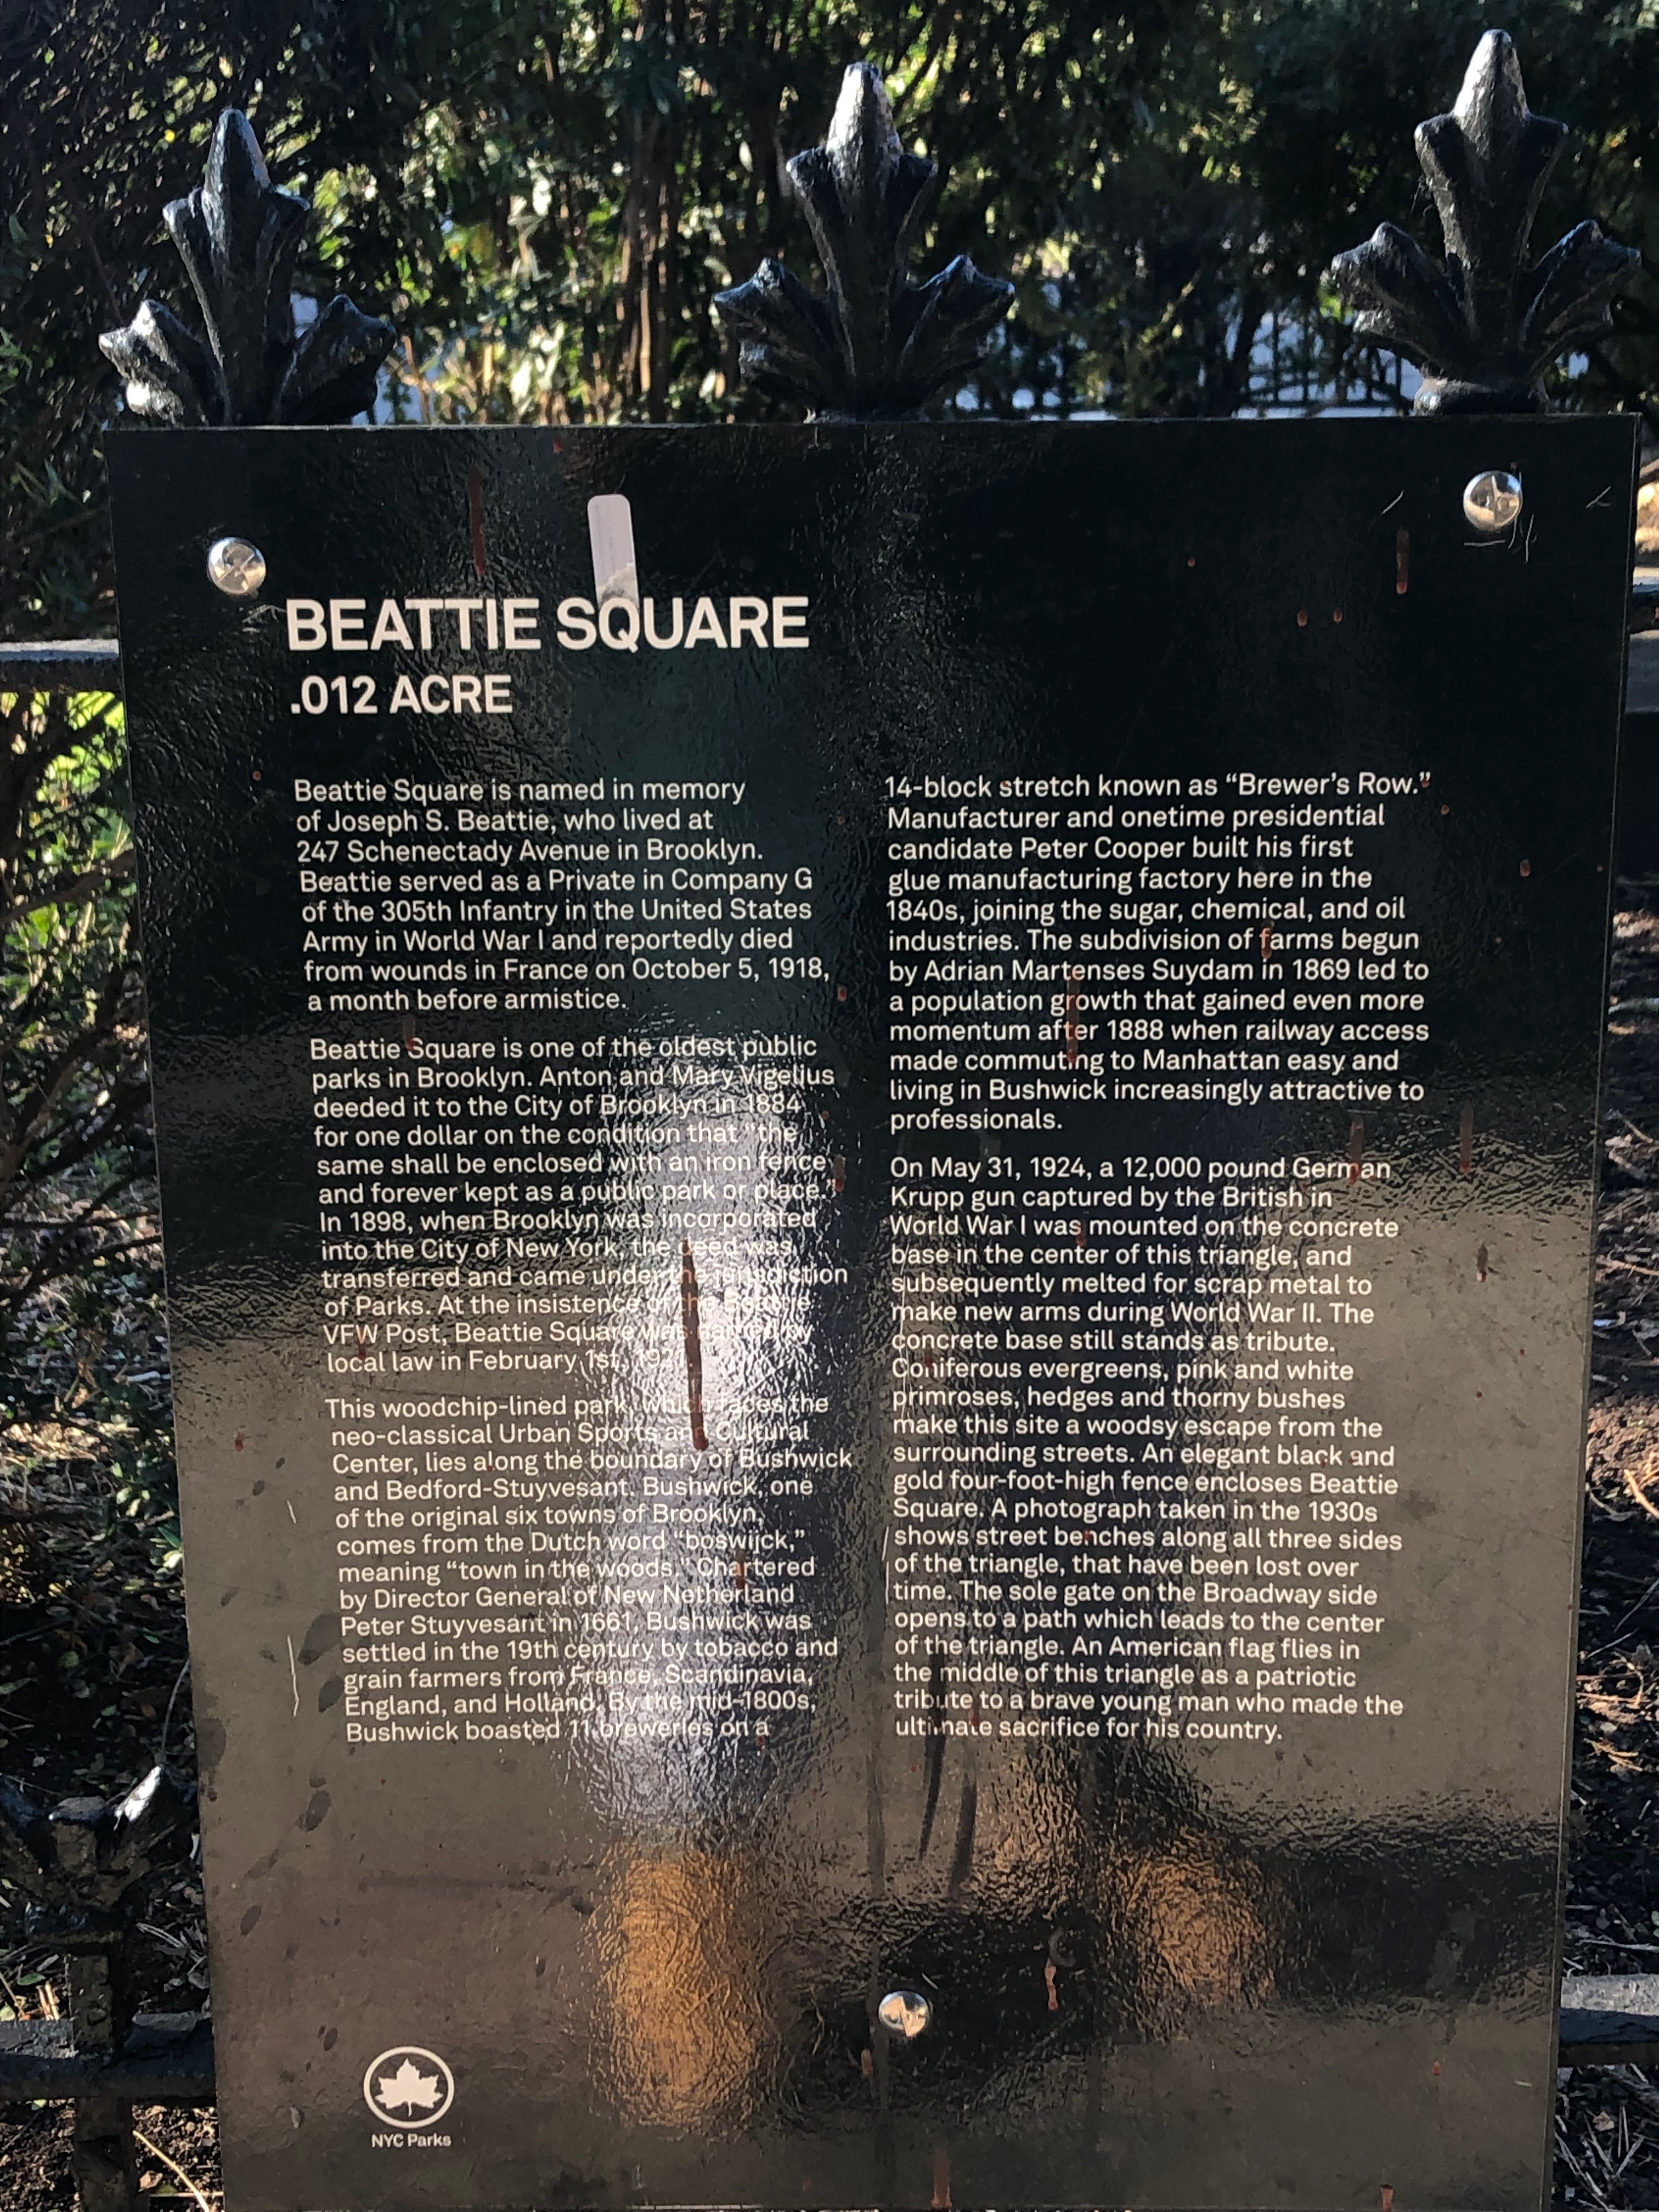 Beattie Square description.